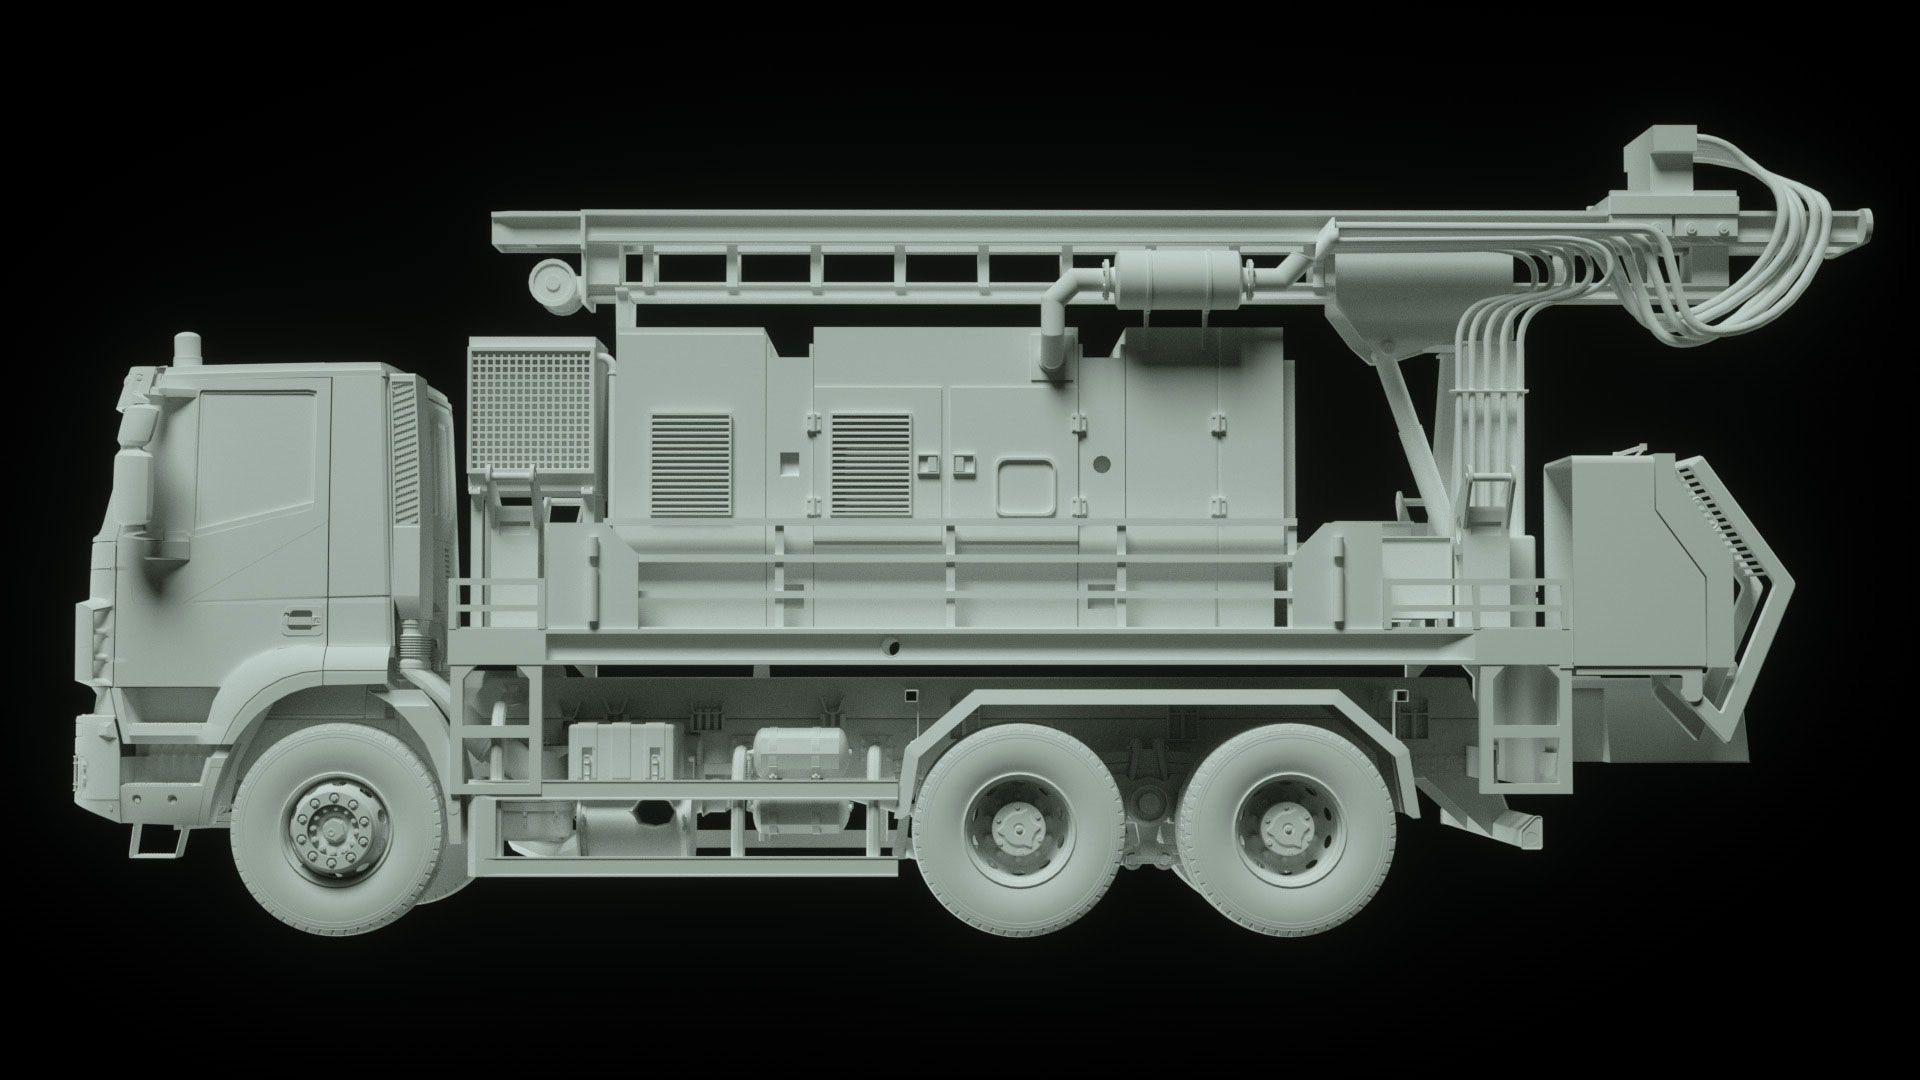 Projects_CharityWater_process_Drilling_Rig_model_04_Octane